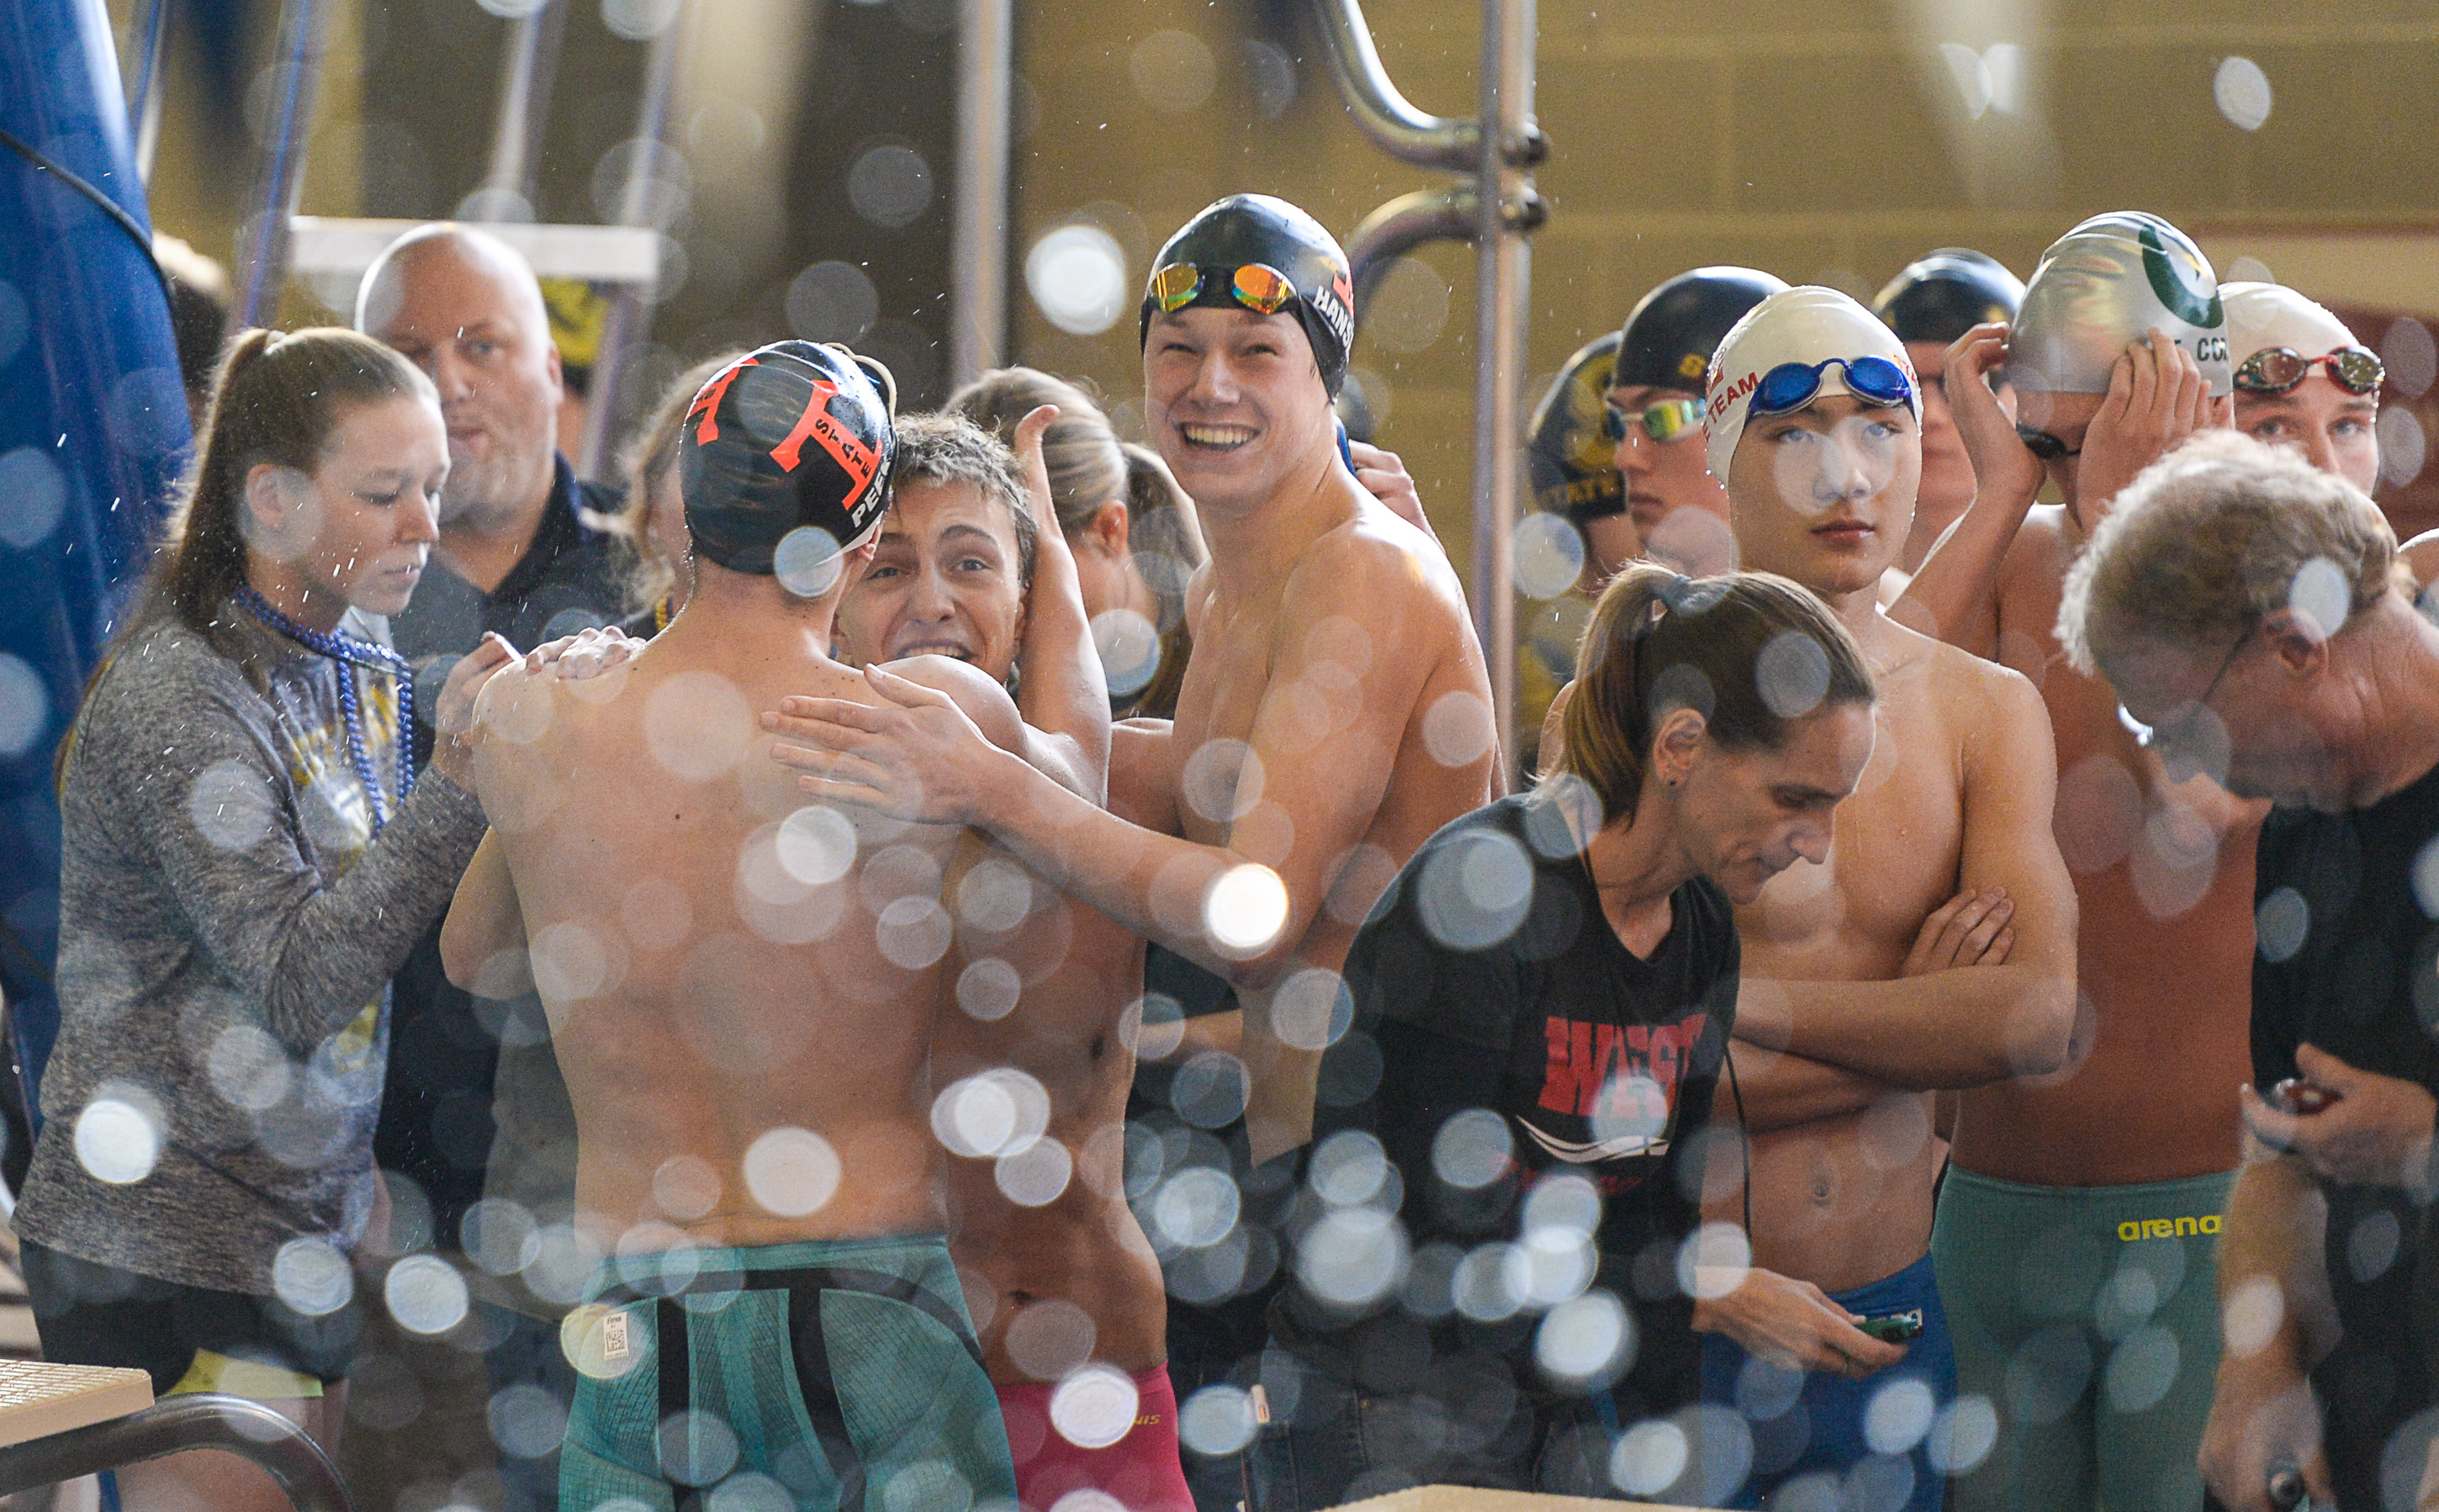 (Francisco Kjolseth  |  The Salt Lake Tribune)  Teams celebrate while competing in the Men 200 Yard Medley at the high school swimming 5A State Championships in Bountiful, Friday February 9, 2018.